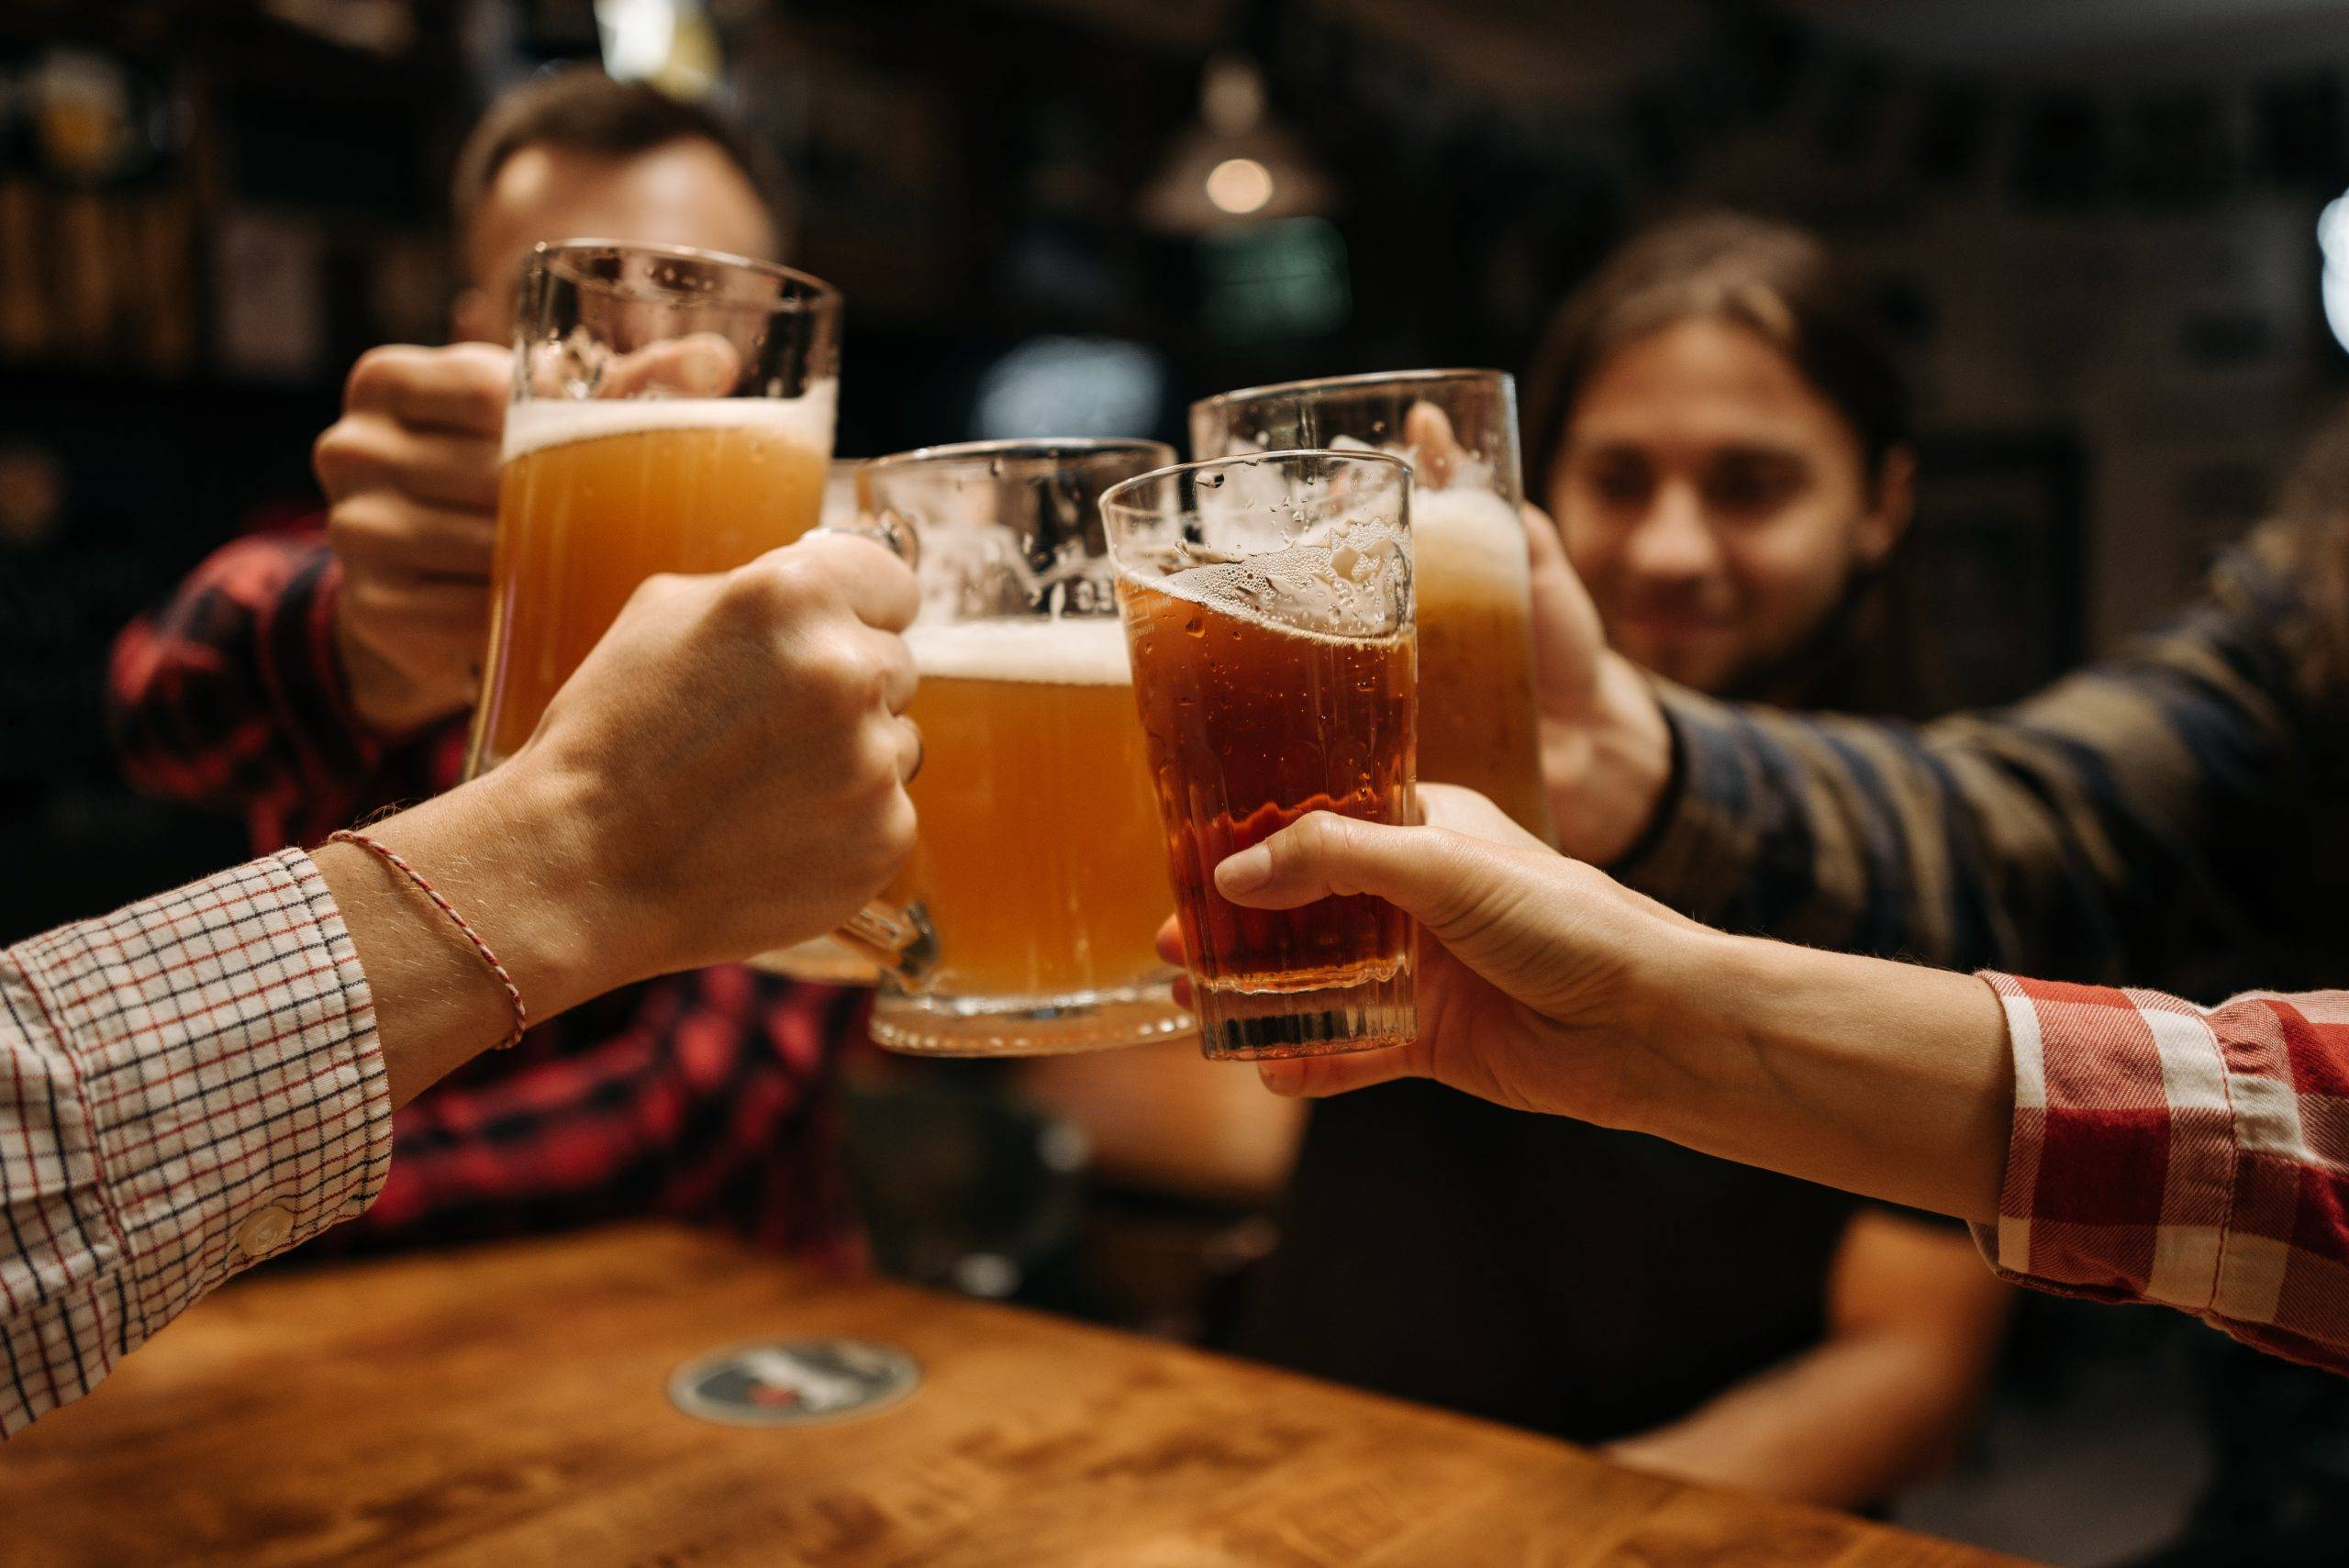 Beer Consumed in Funeral Rituals 9,000 Years Ago